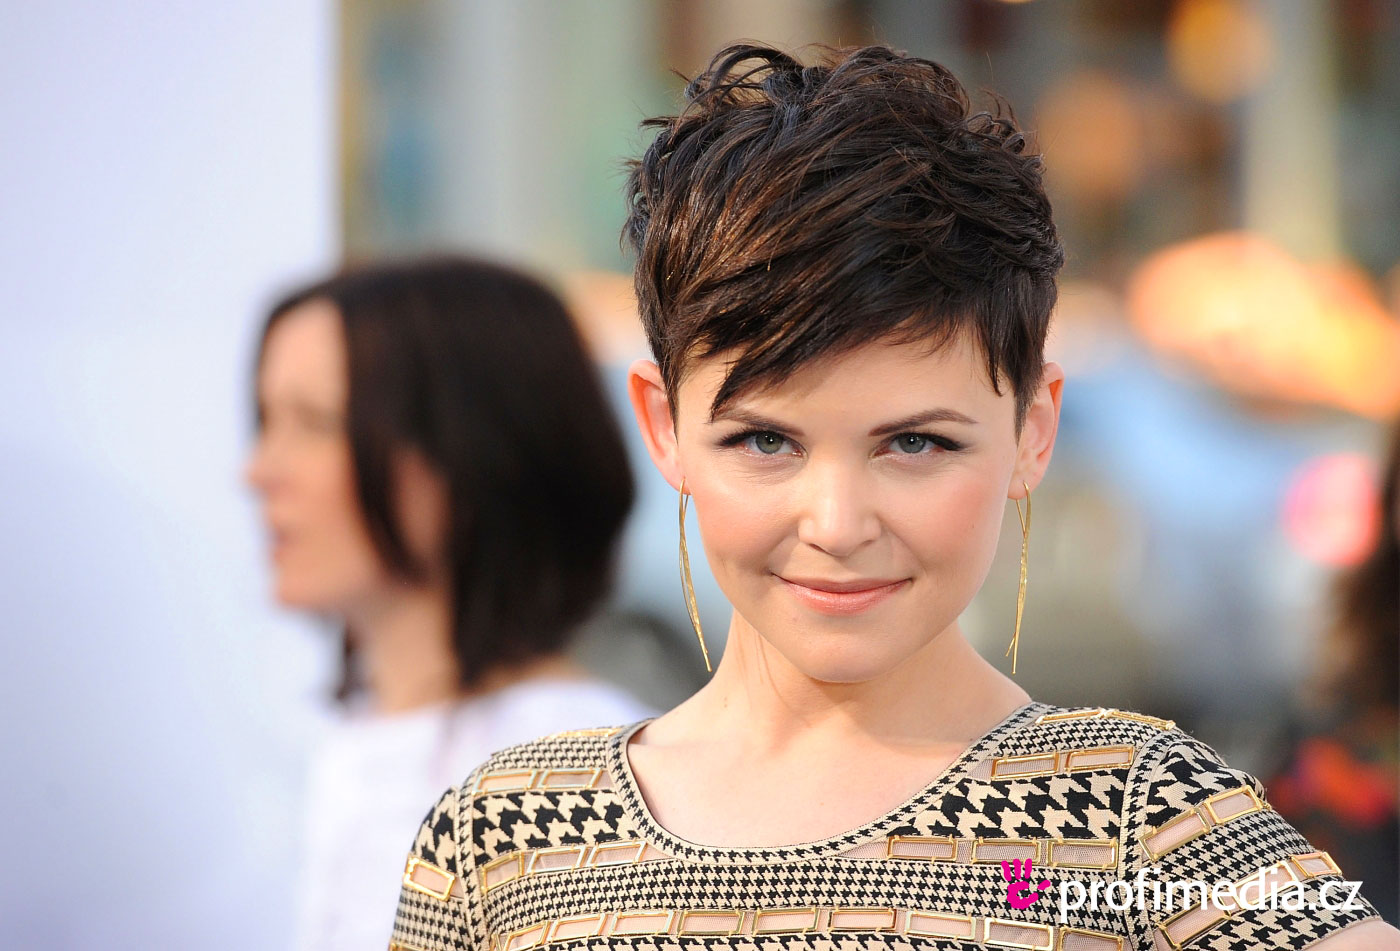 ginnifer goodwin hair styles 21 pixie haircut ideas designs hairstyles design 8658